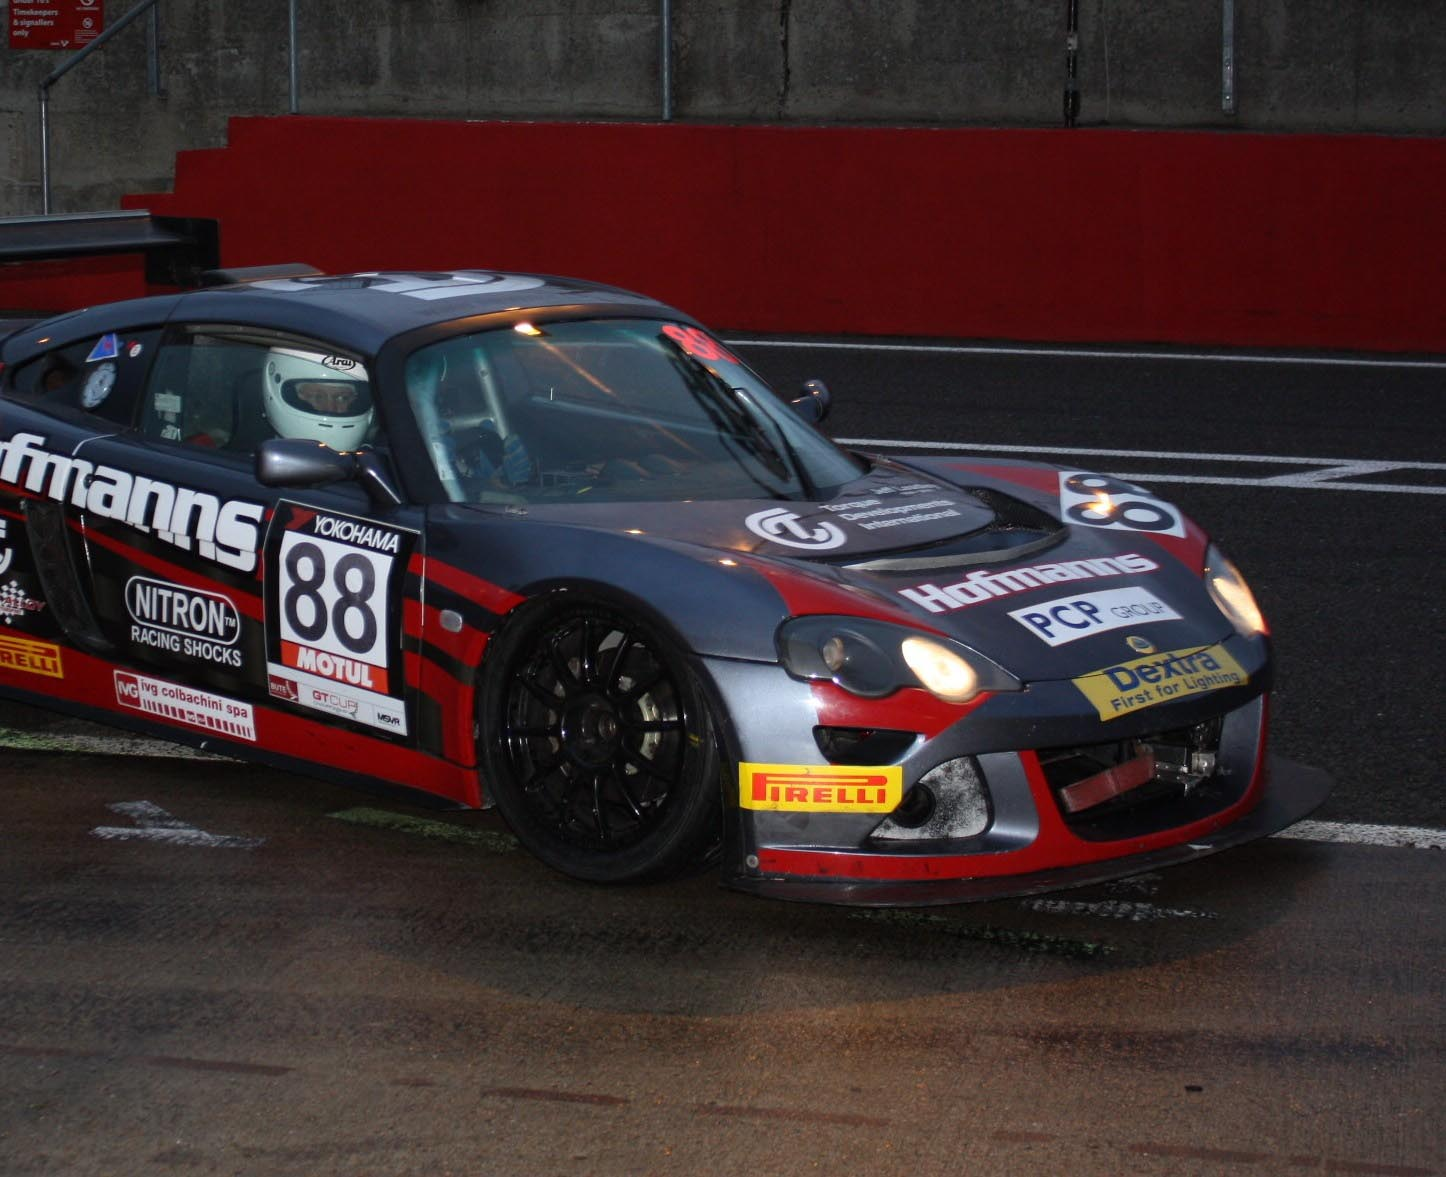 Torque Developments brings success at Brands Hatch 1000Km race